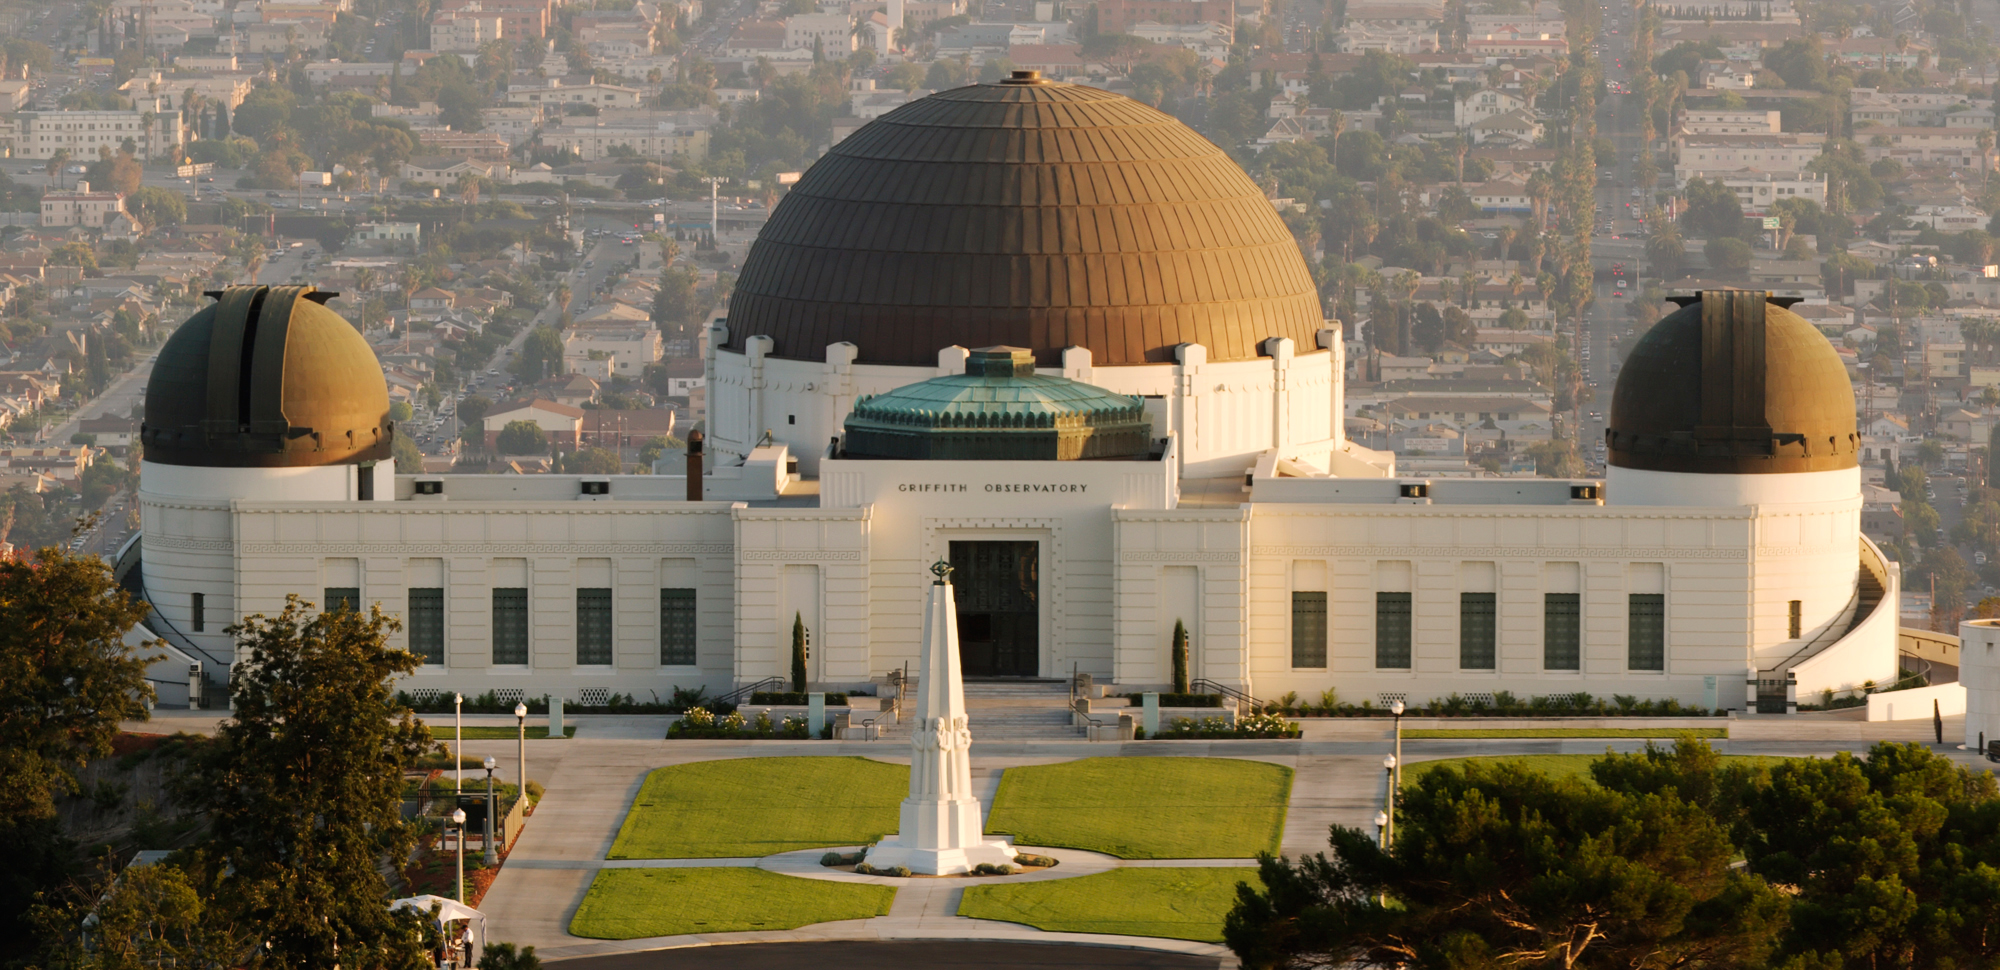 Griffith_observatory_2006.jpg